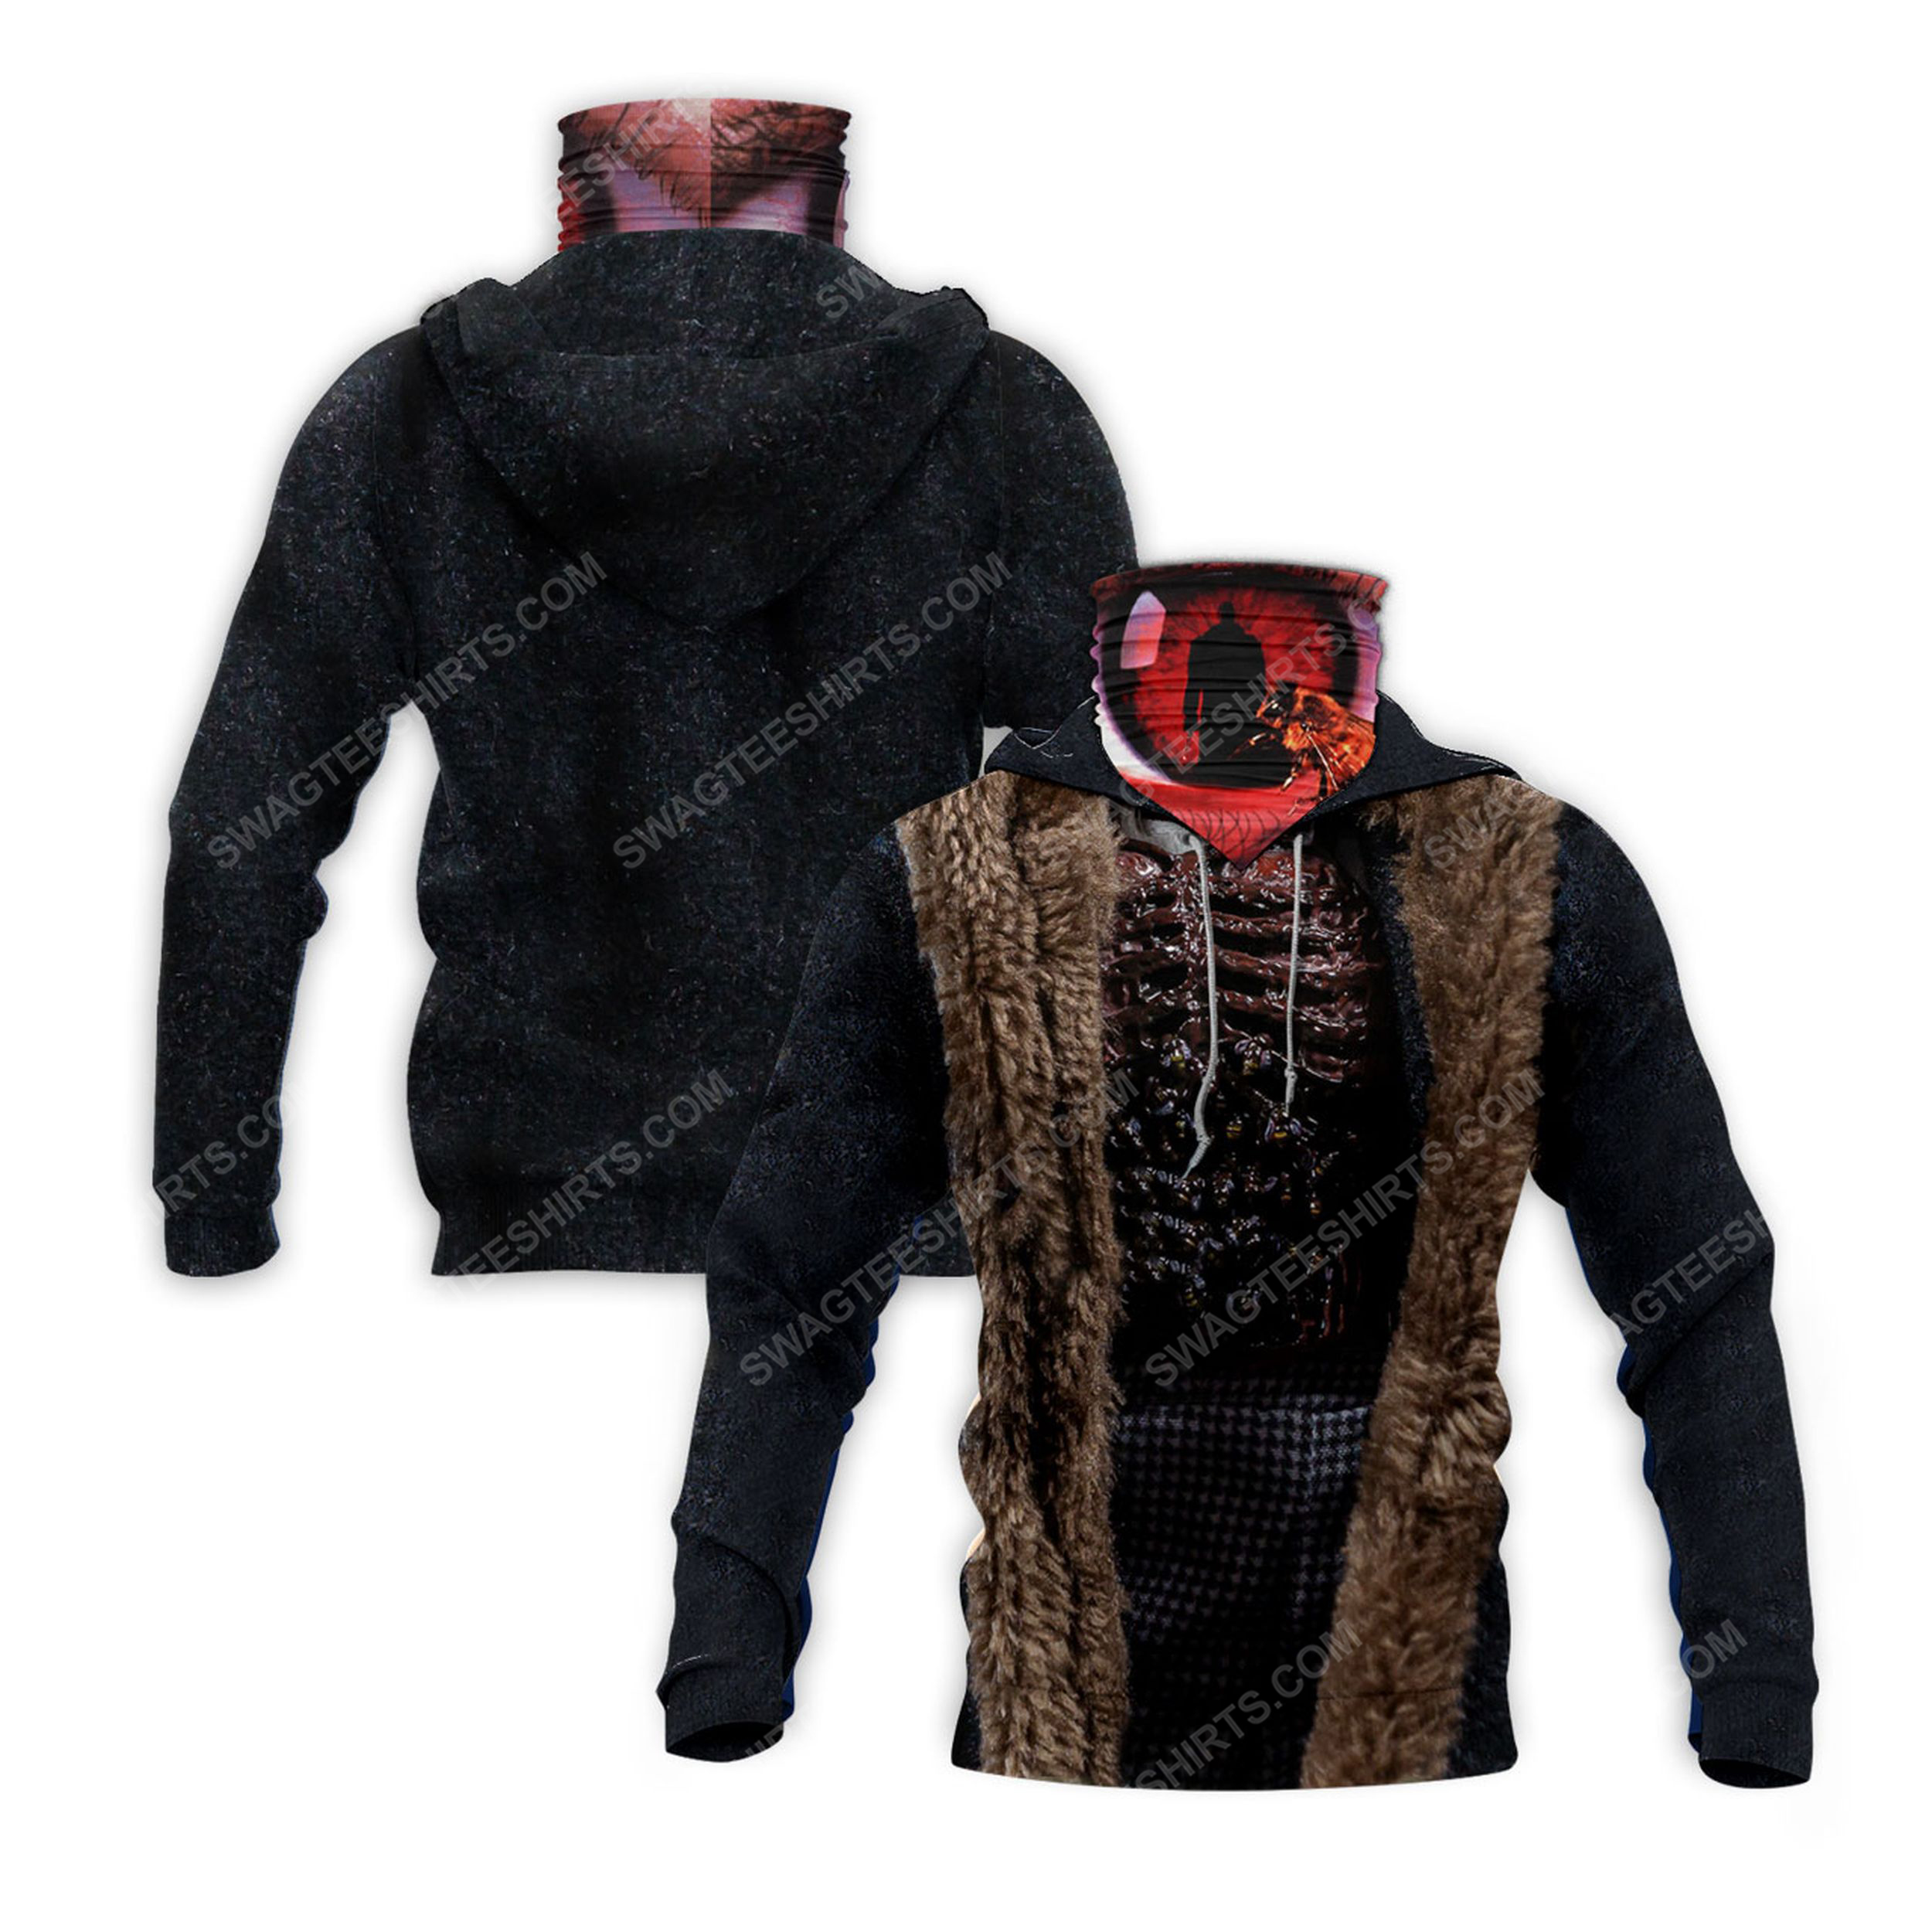 Horror movie candyman for halloween full print mask hoodie 2(1) - Copy